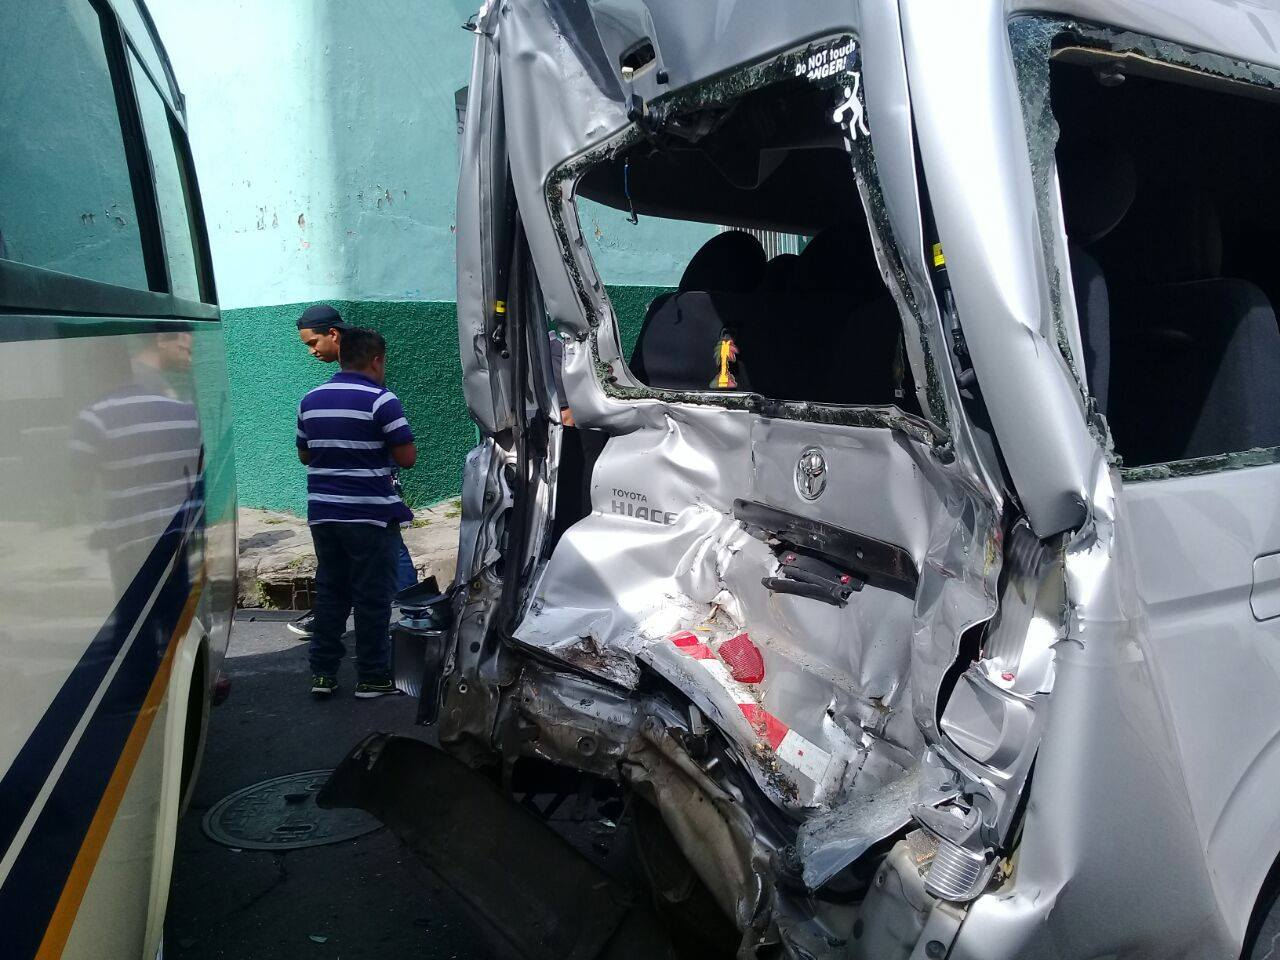 Cruz Roja atiende accidente de tránsito